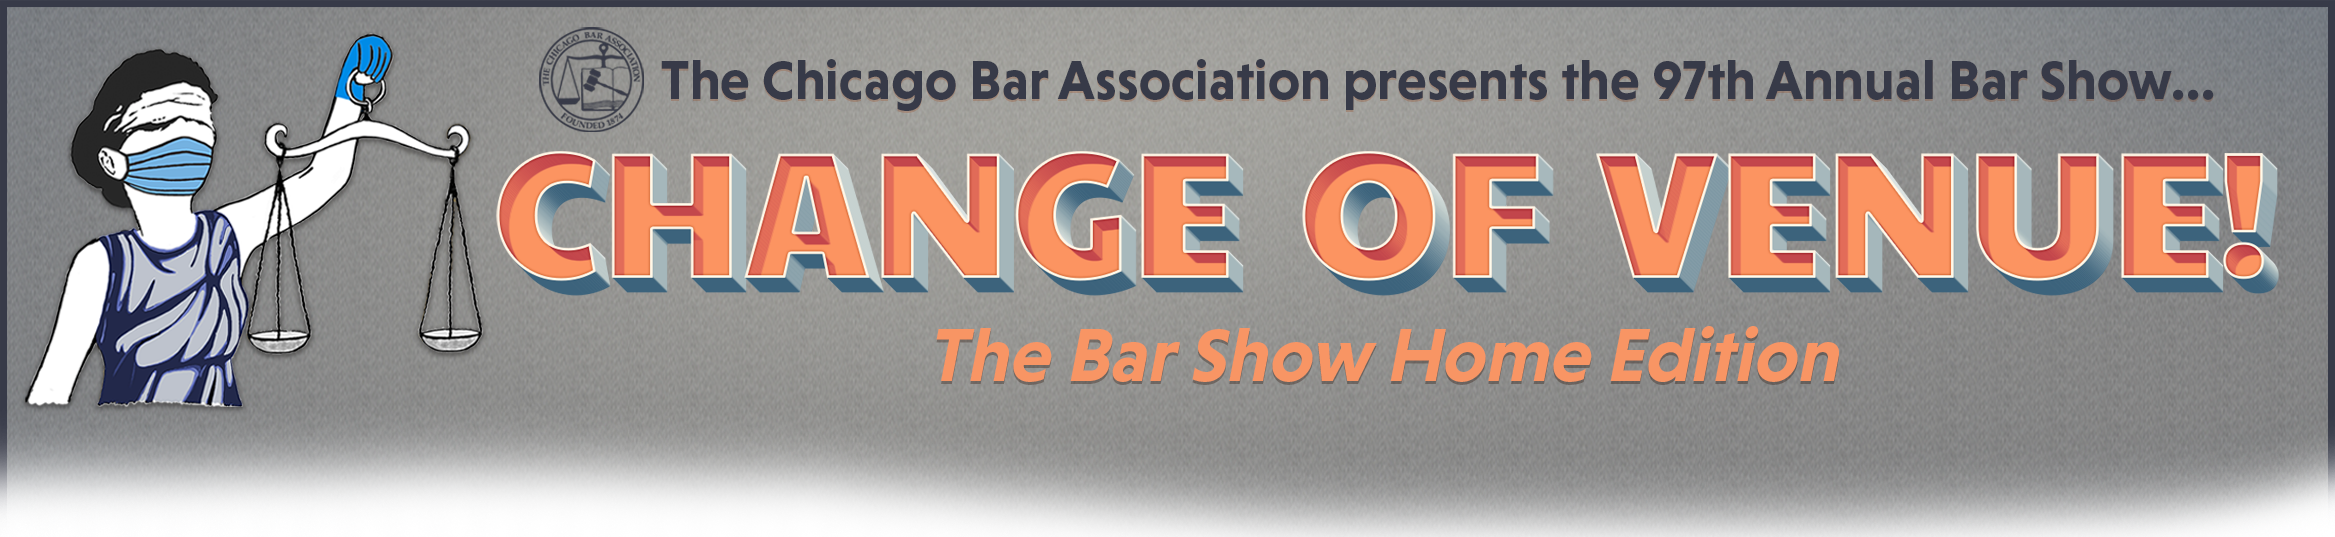 Change of Venue: The Bar Show